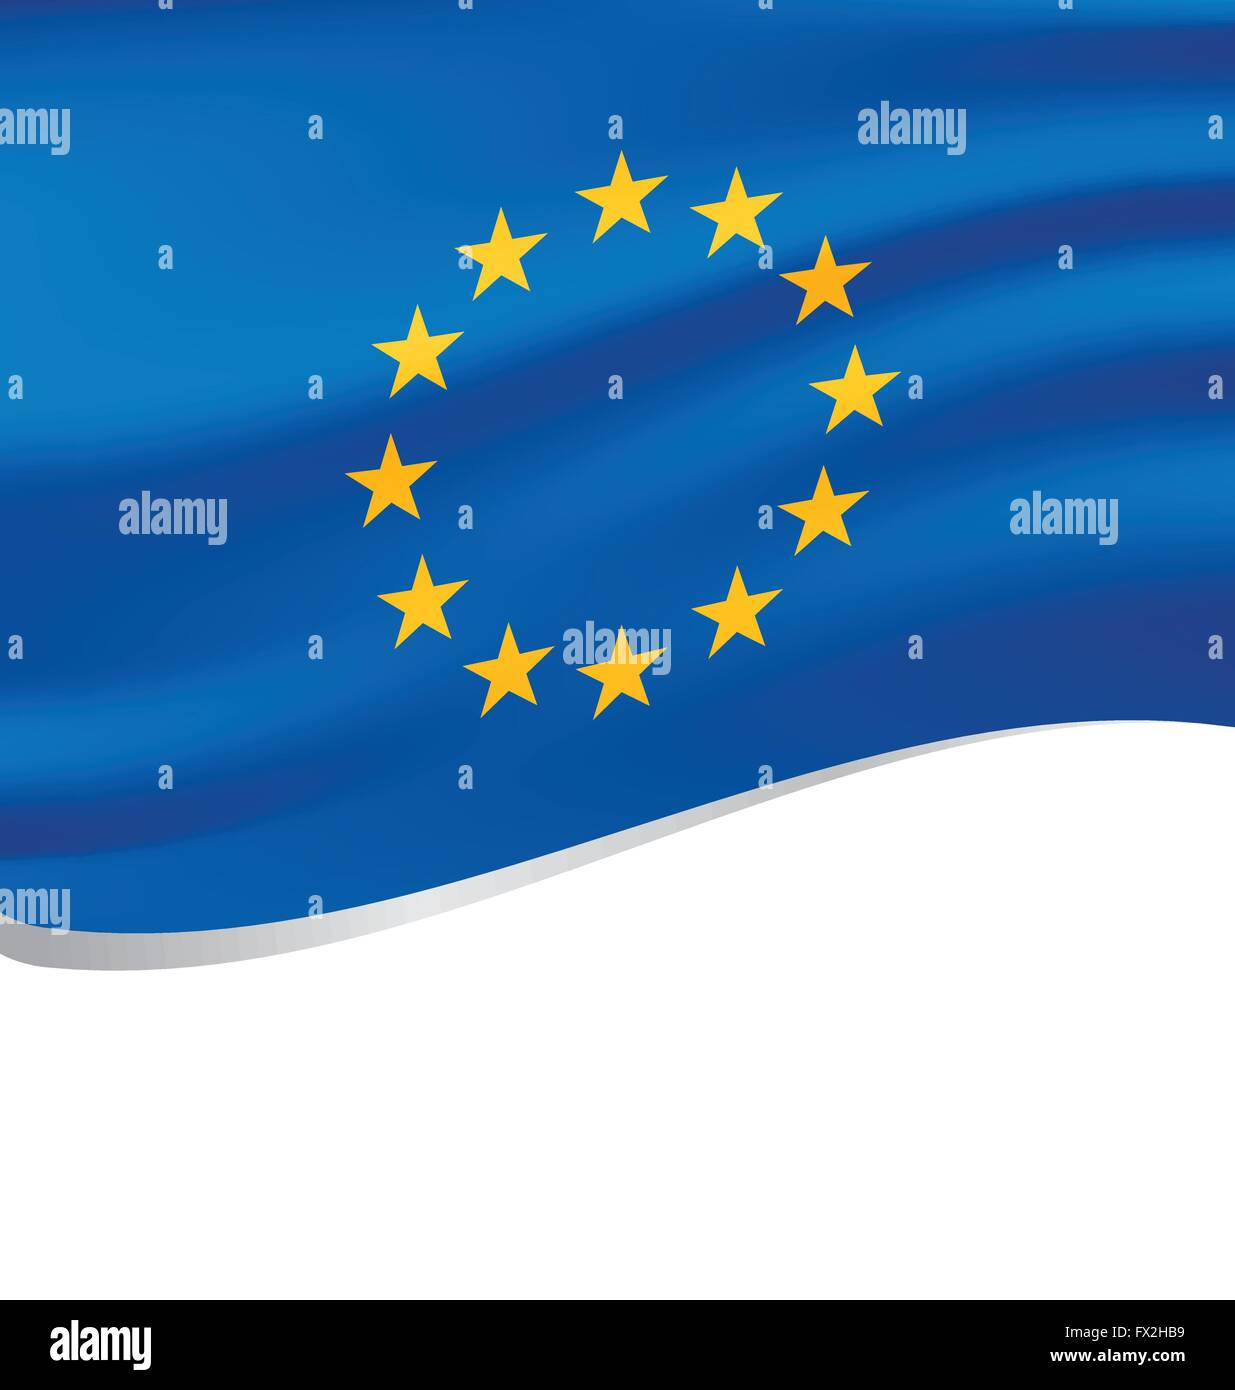 Waving flag of European solated on white background - Stock Vector